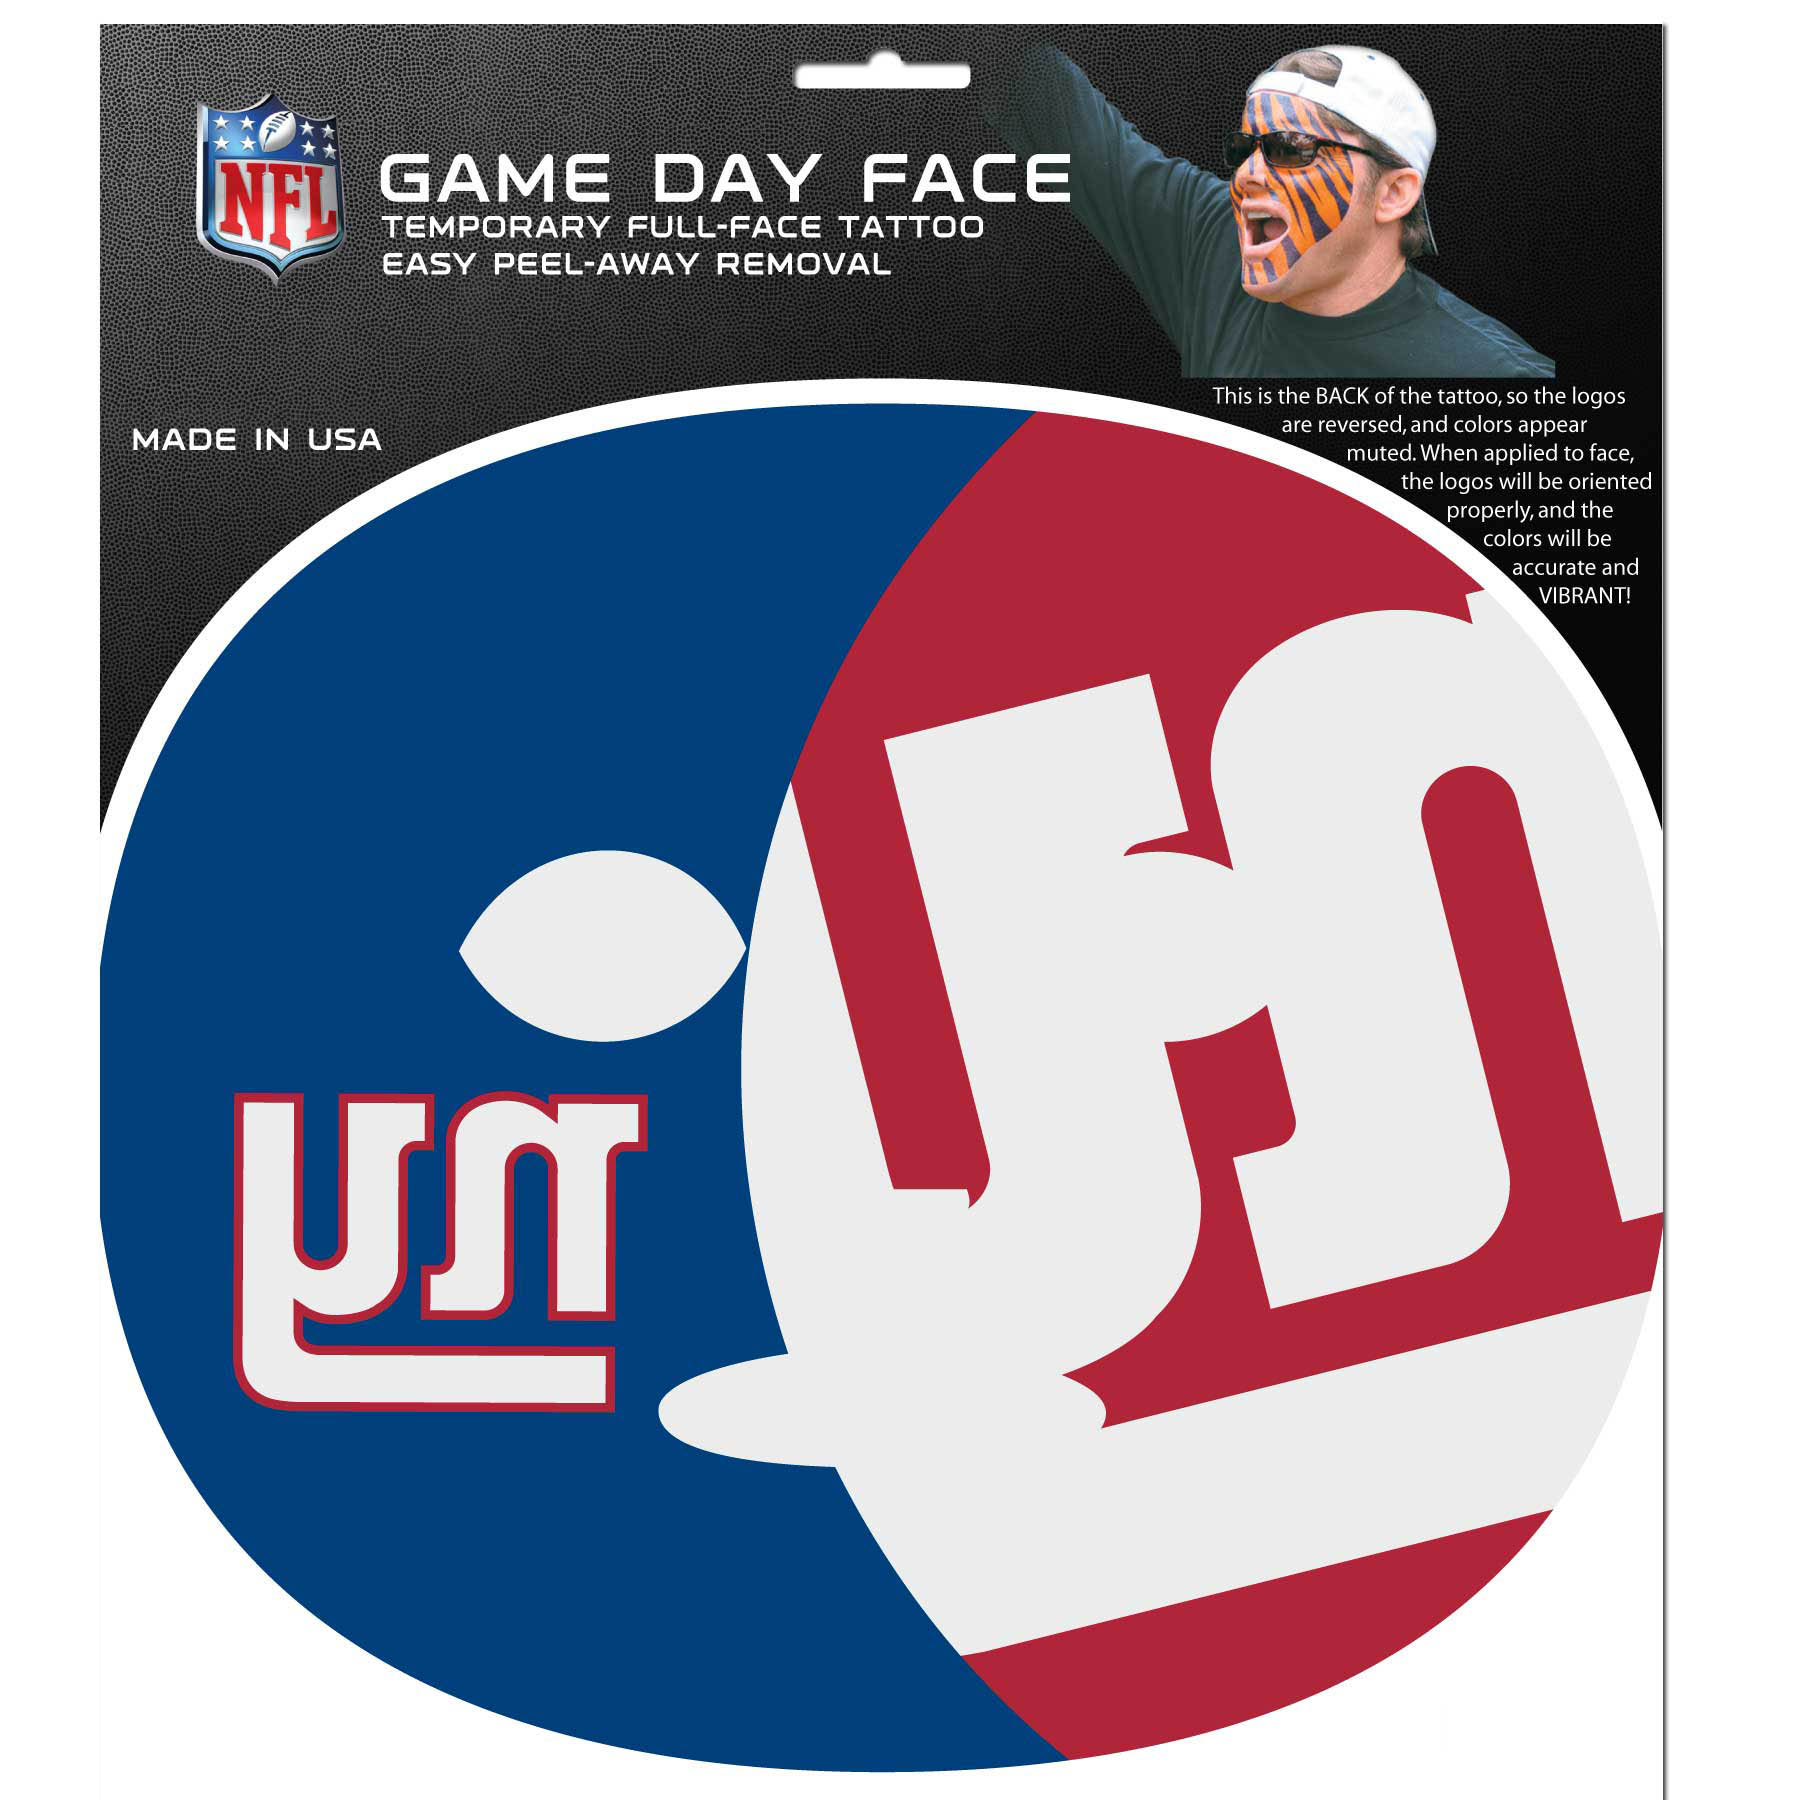 New York Giants Set of 8 Game Day Faces - No better way to show your team pride than by painting your face. Siskiyou's Game Day Face Temporary Tattoo isn't your typical face paint. It is a water based application that doesn't smudge, smear or sweat off while you're wearing it and easily peels off after you're done celebrating your team's big Win! The temporary tattoo is large enough to trim down to fit your face. Our Game Day Face Temporary Tattoo's are fun for fans of all ages. You may have seen our product before, these are the same Temporary Face Tattoos as pitched on ABC's Shark Tank.